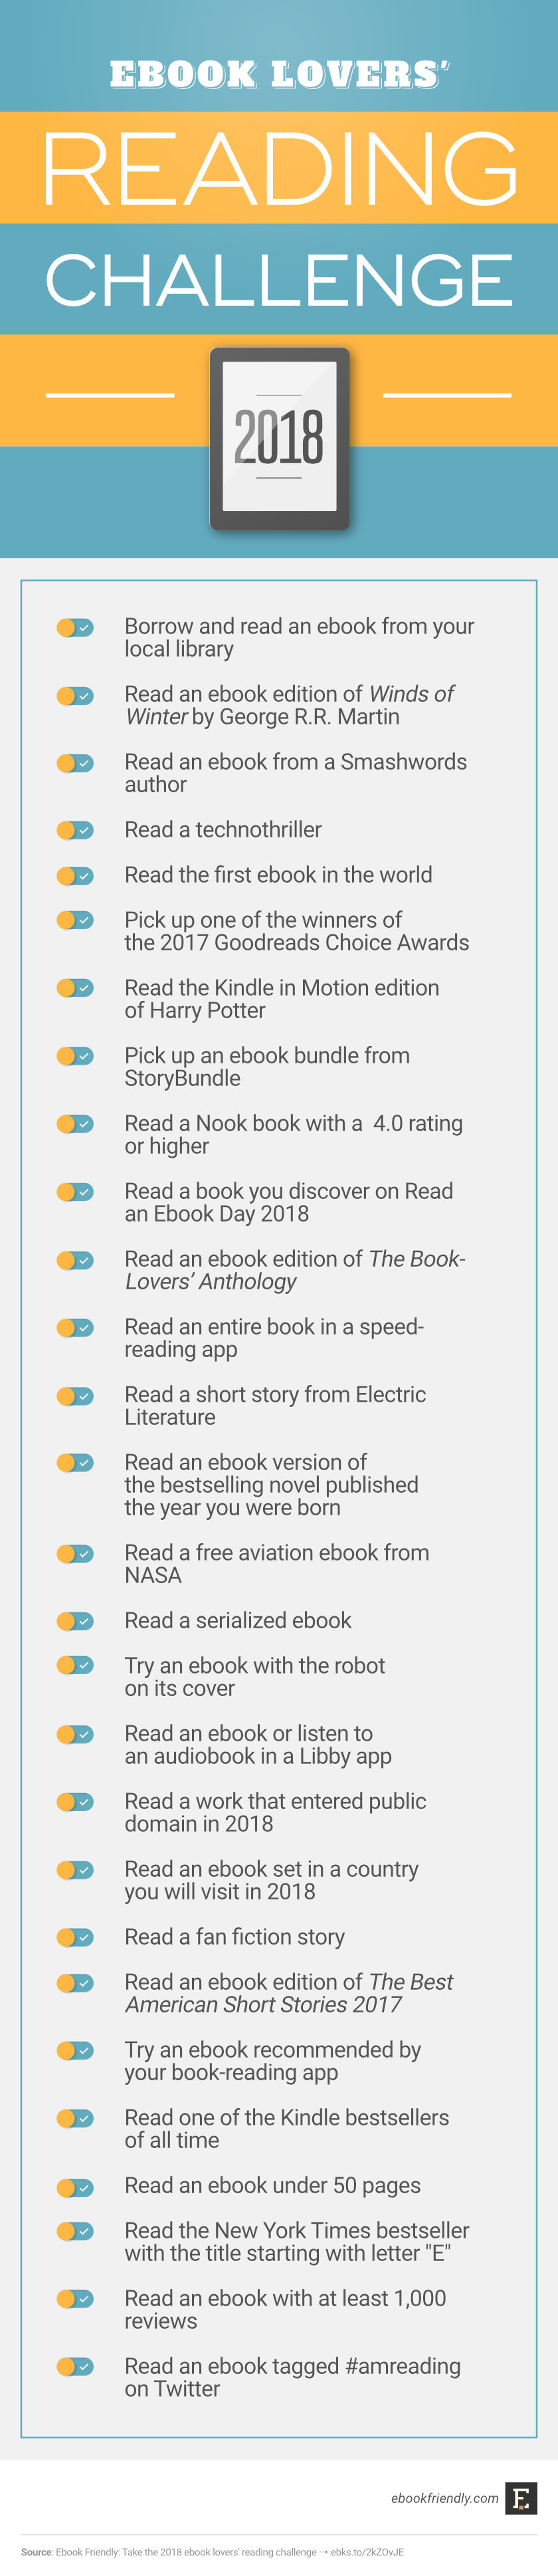 Ebook lovers' reading challenge 2018 #infographic